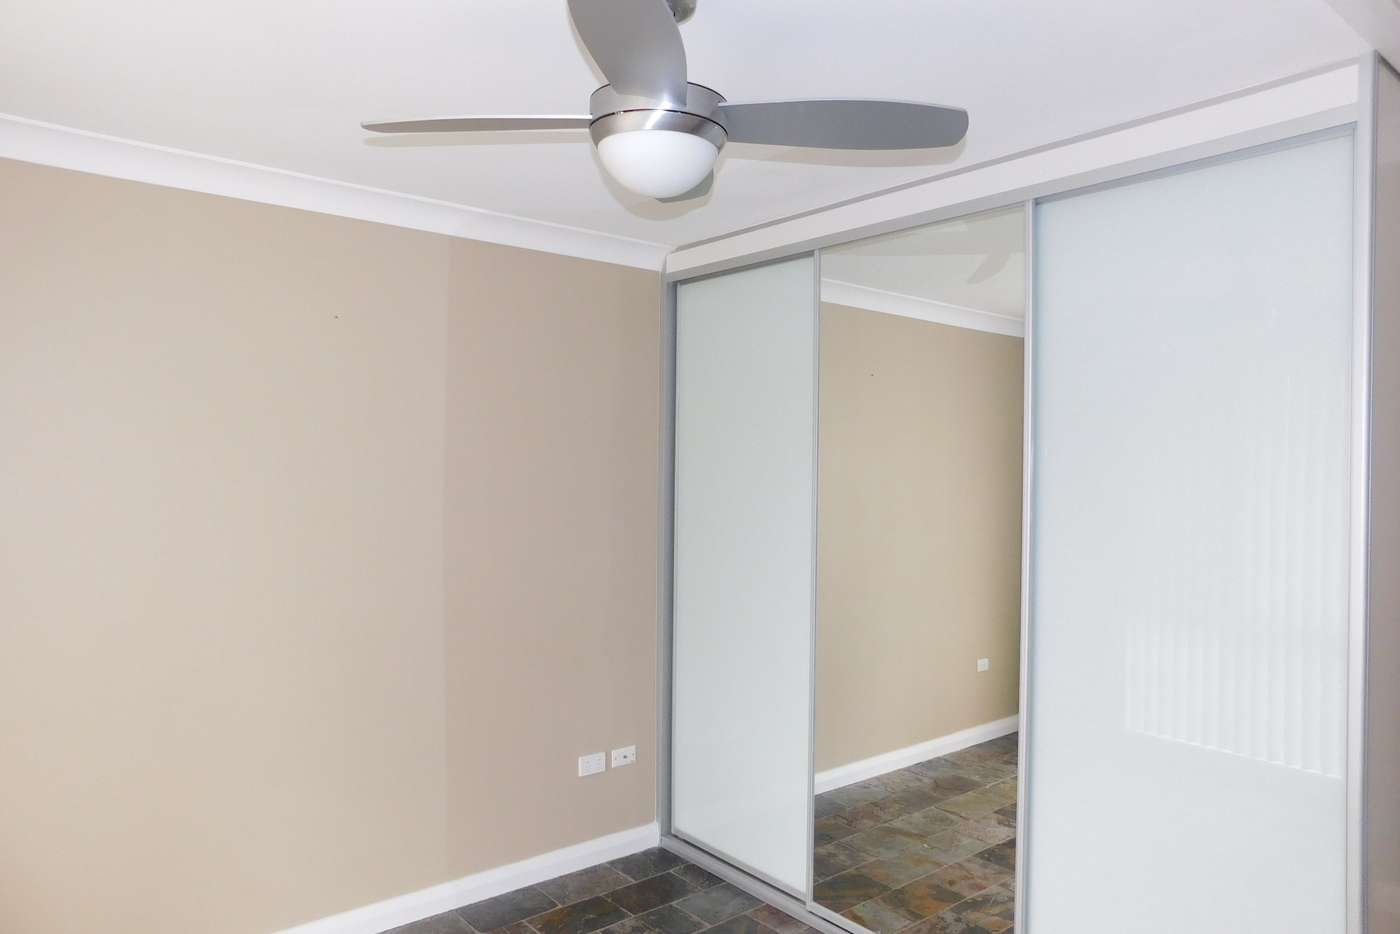 Sixth view of Homely house listing, 50 Tuncurry Street, Bossley Park NSW 2176